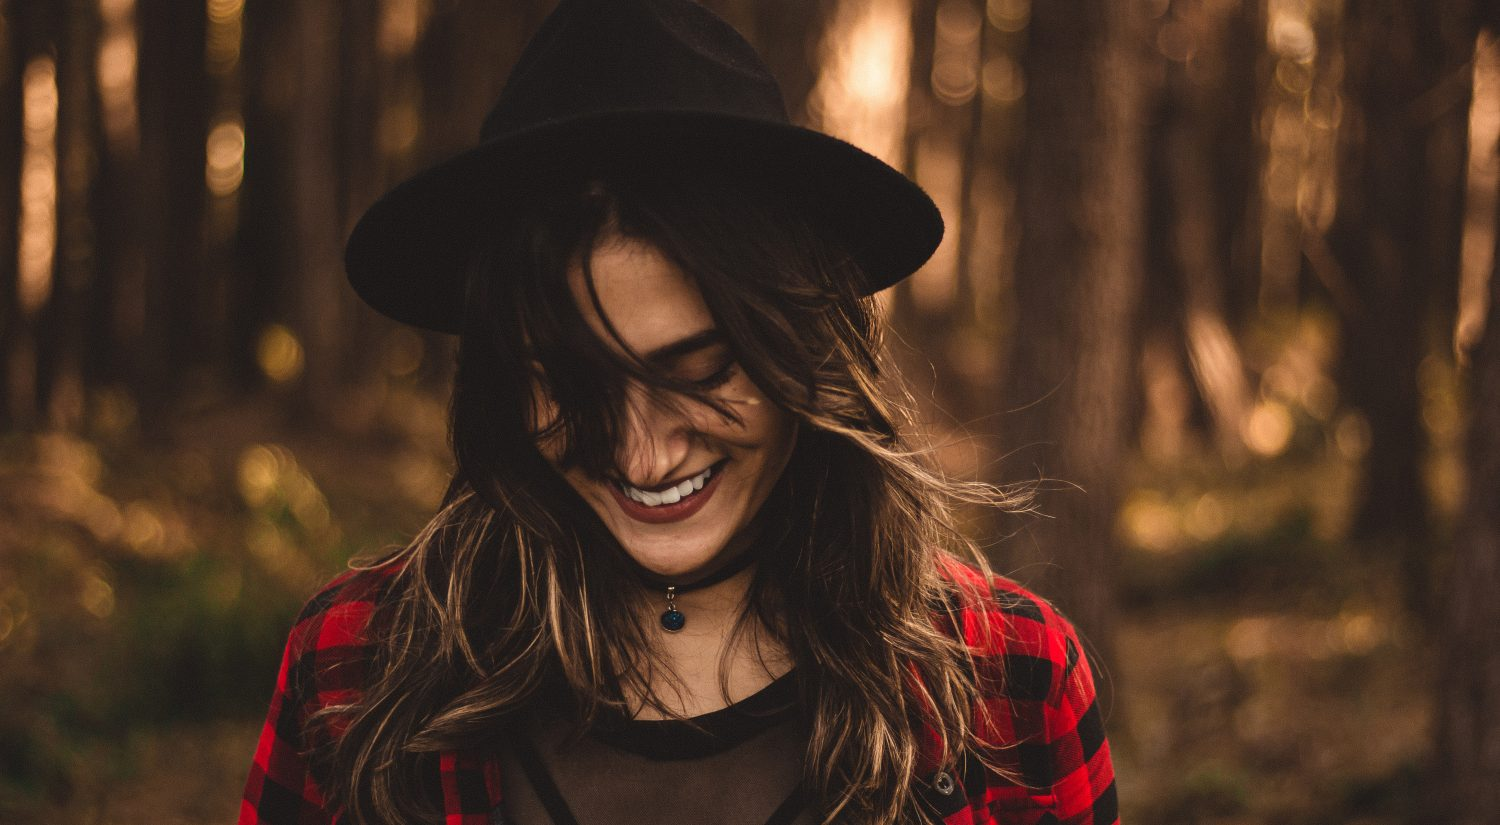 Women smiling in the woods